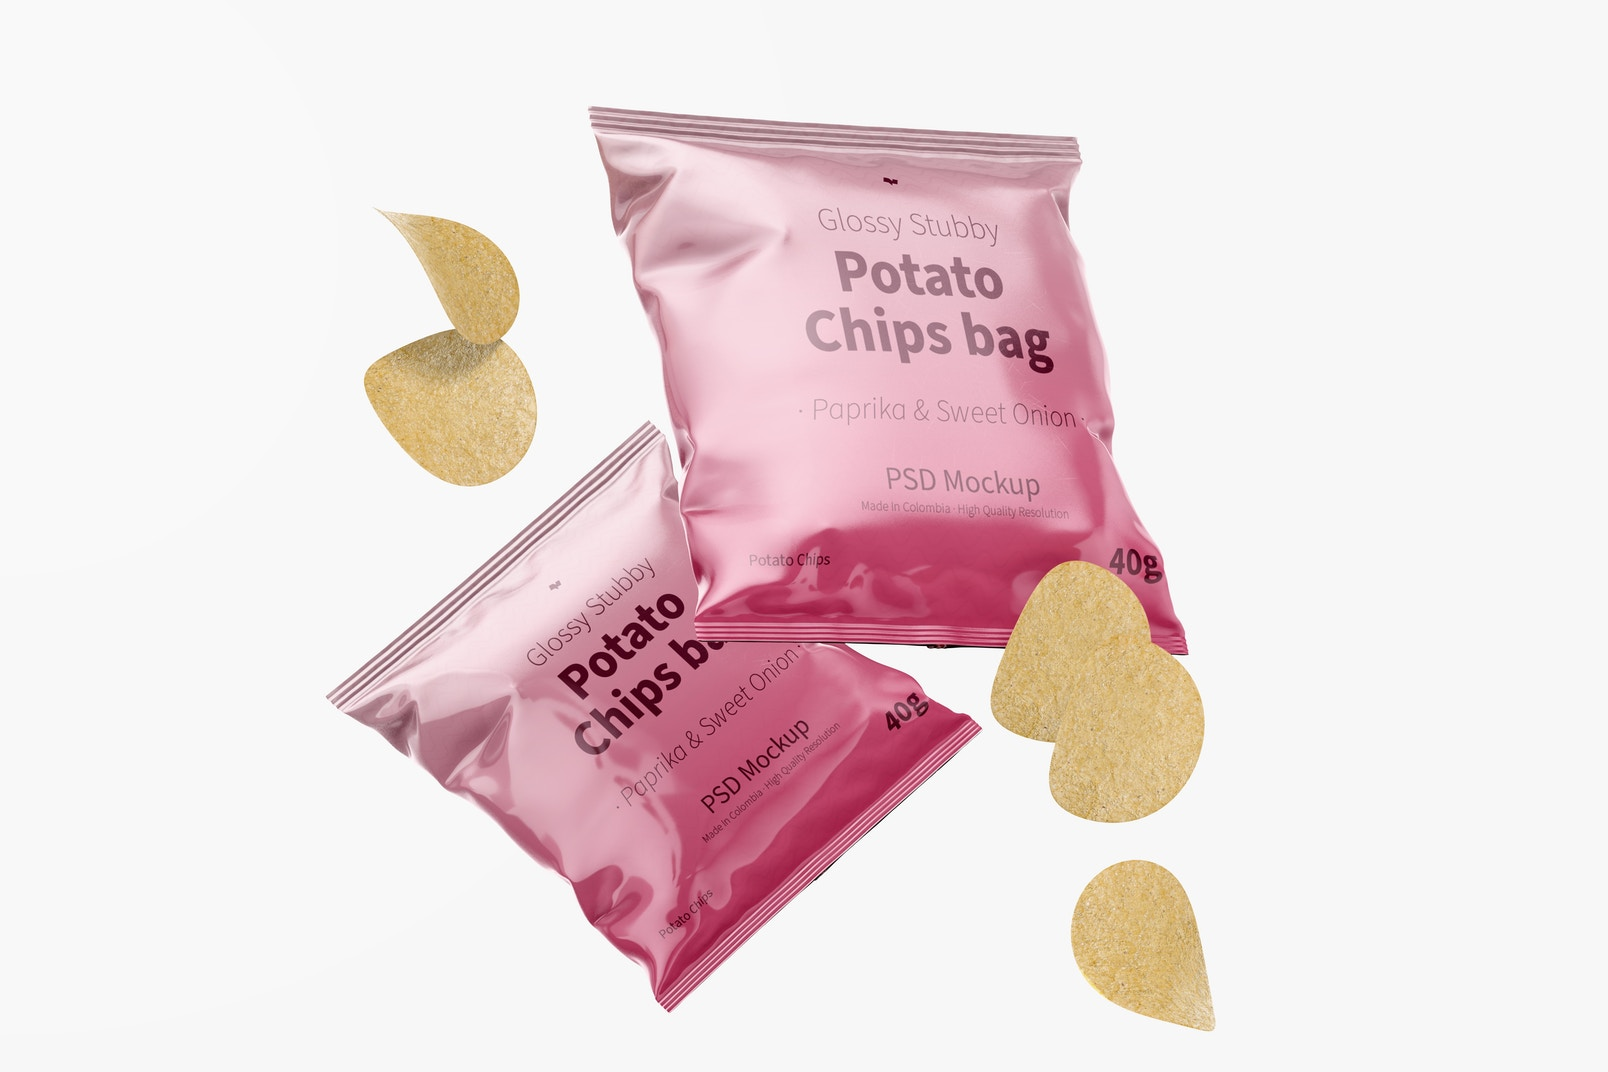 Glossy Stubby Chips Bag Mockup, Floating